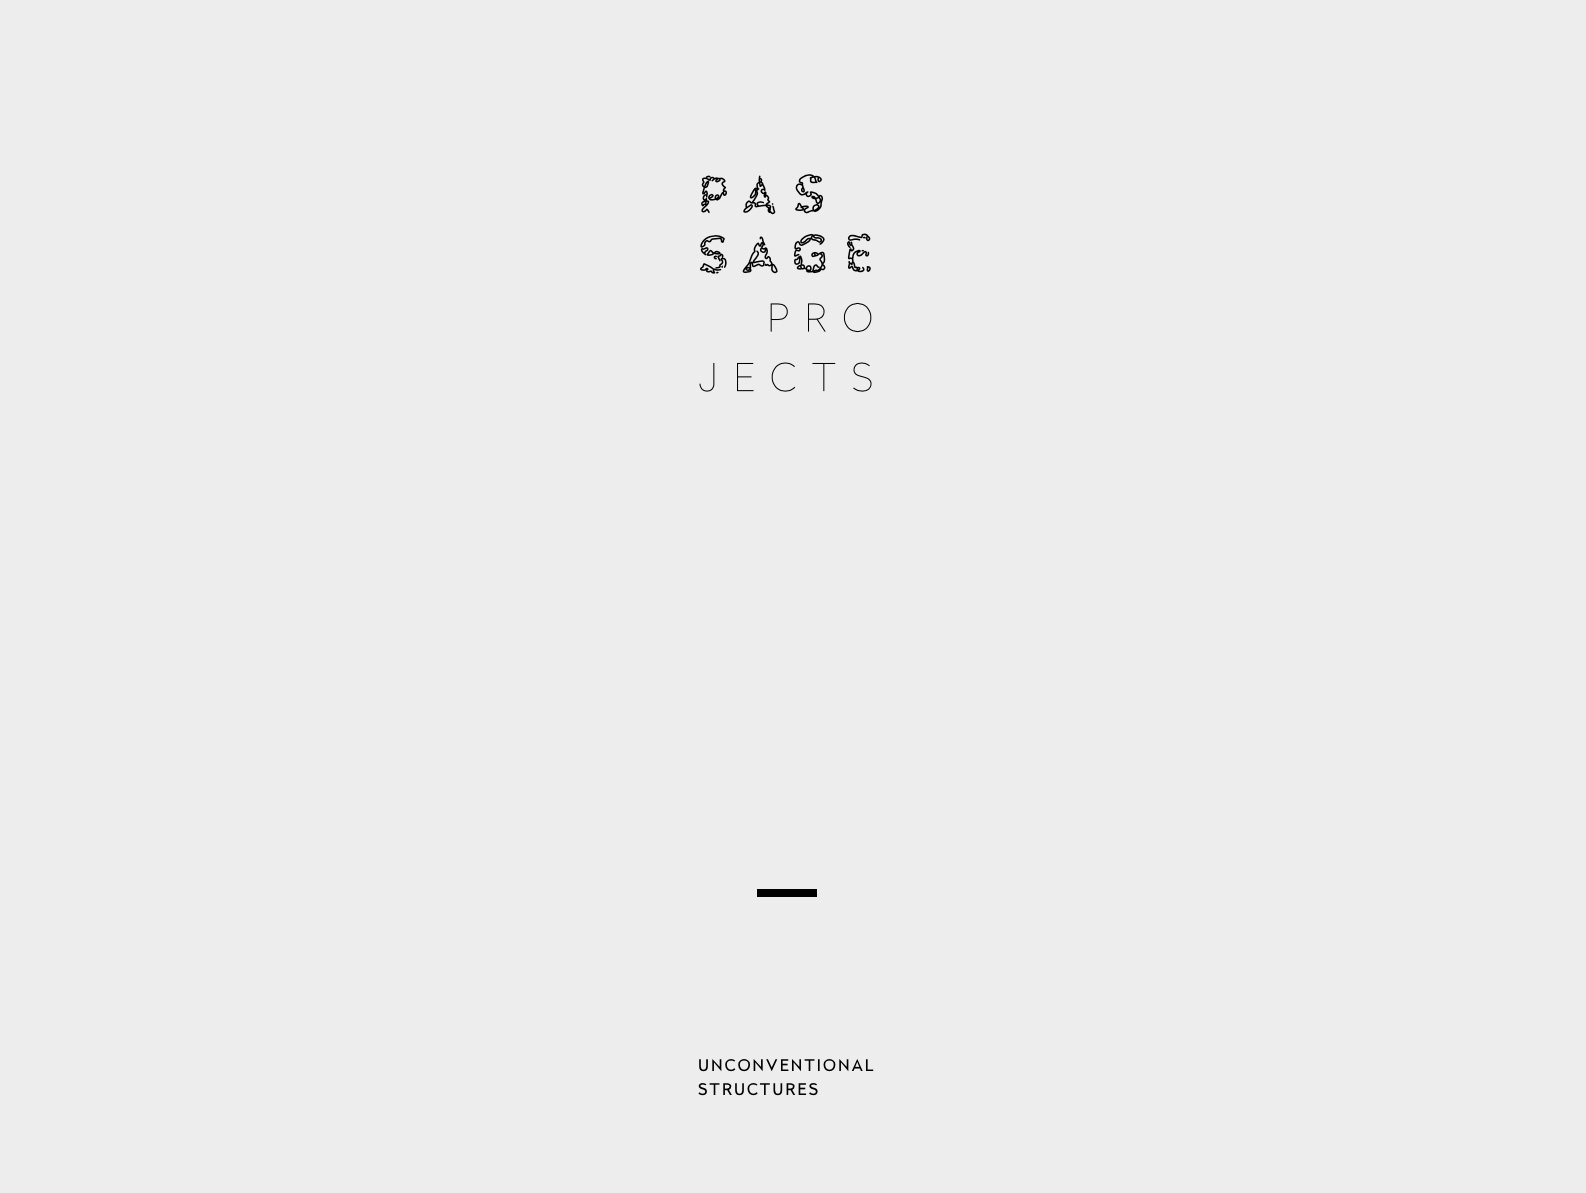 passage projects